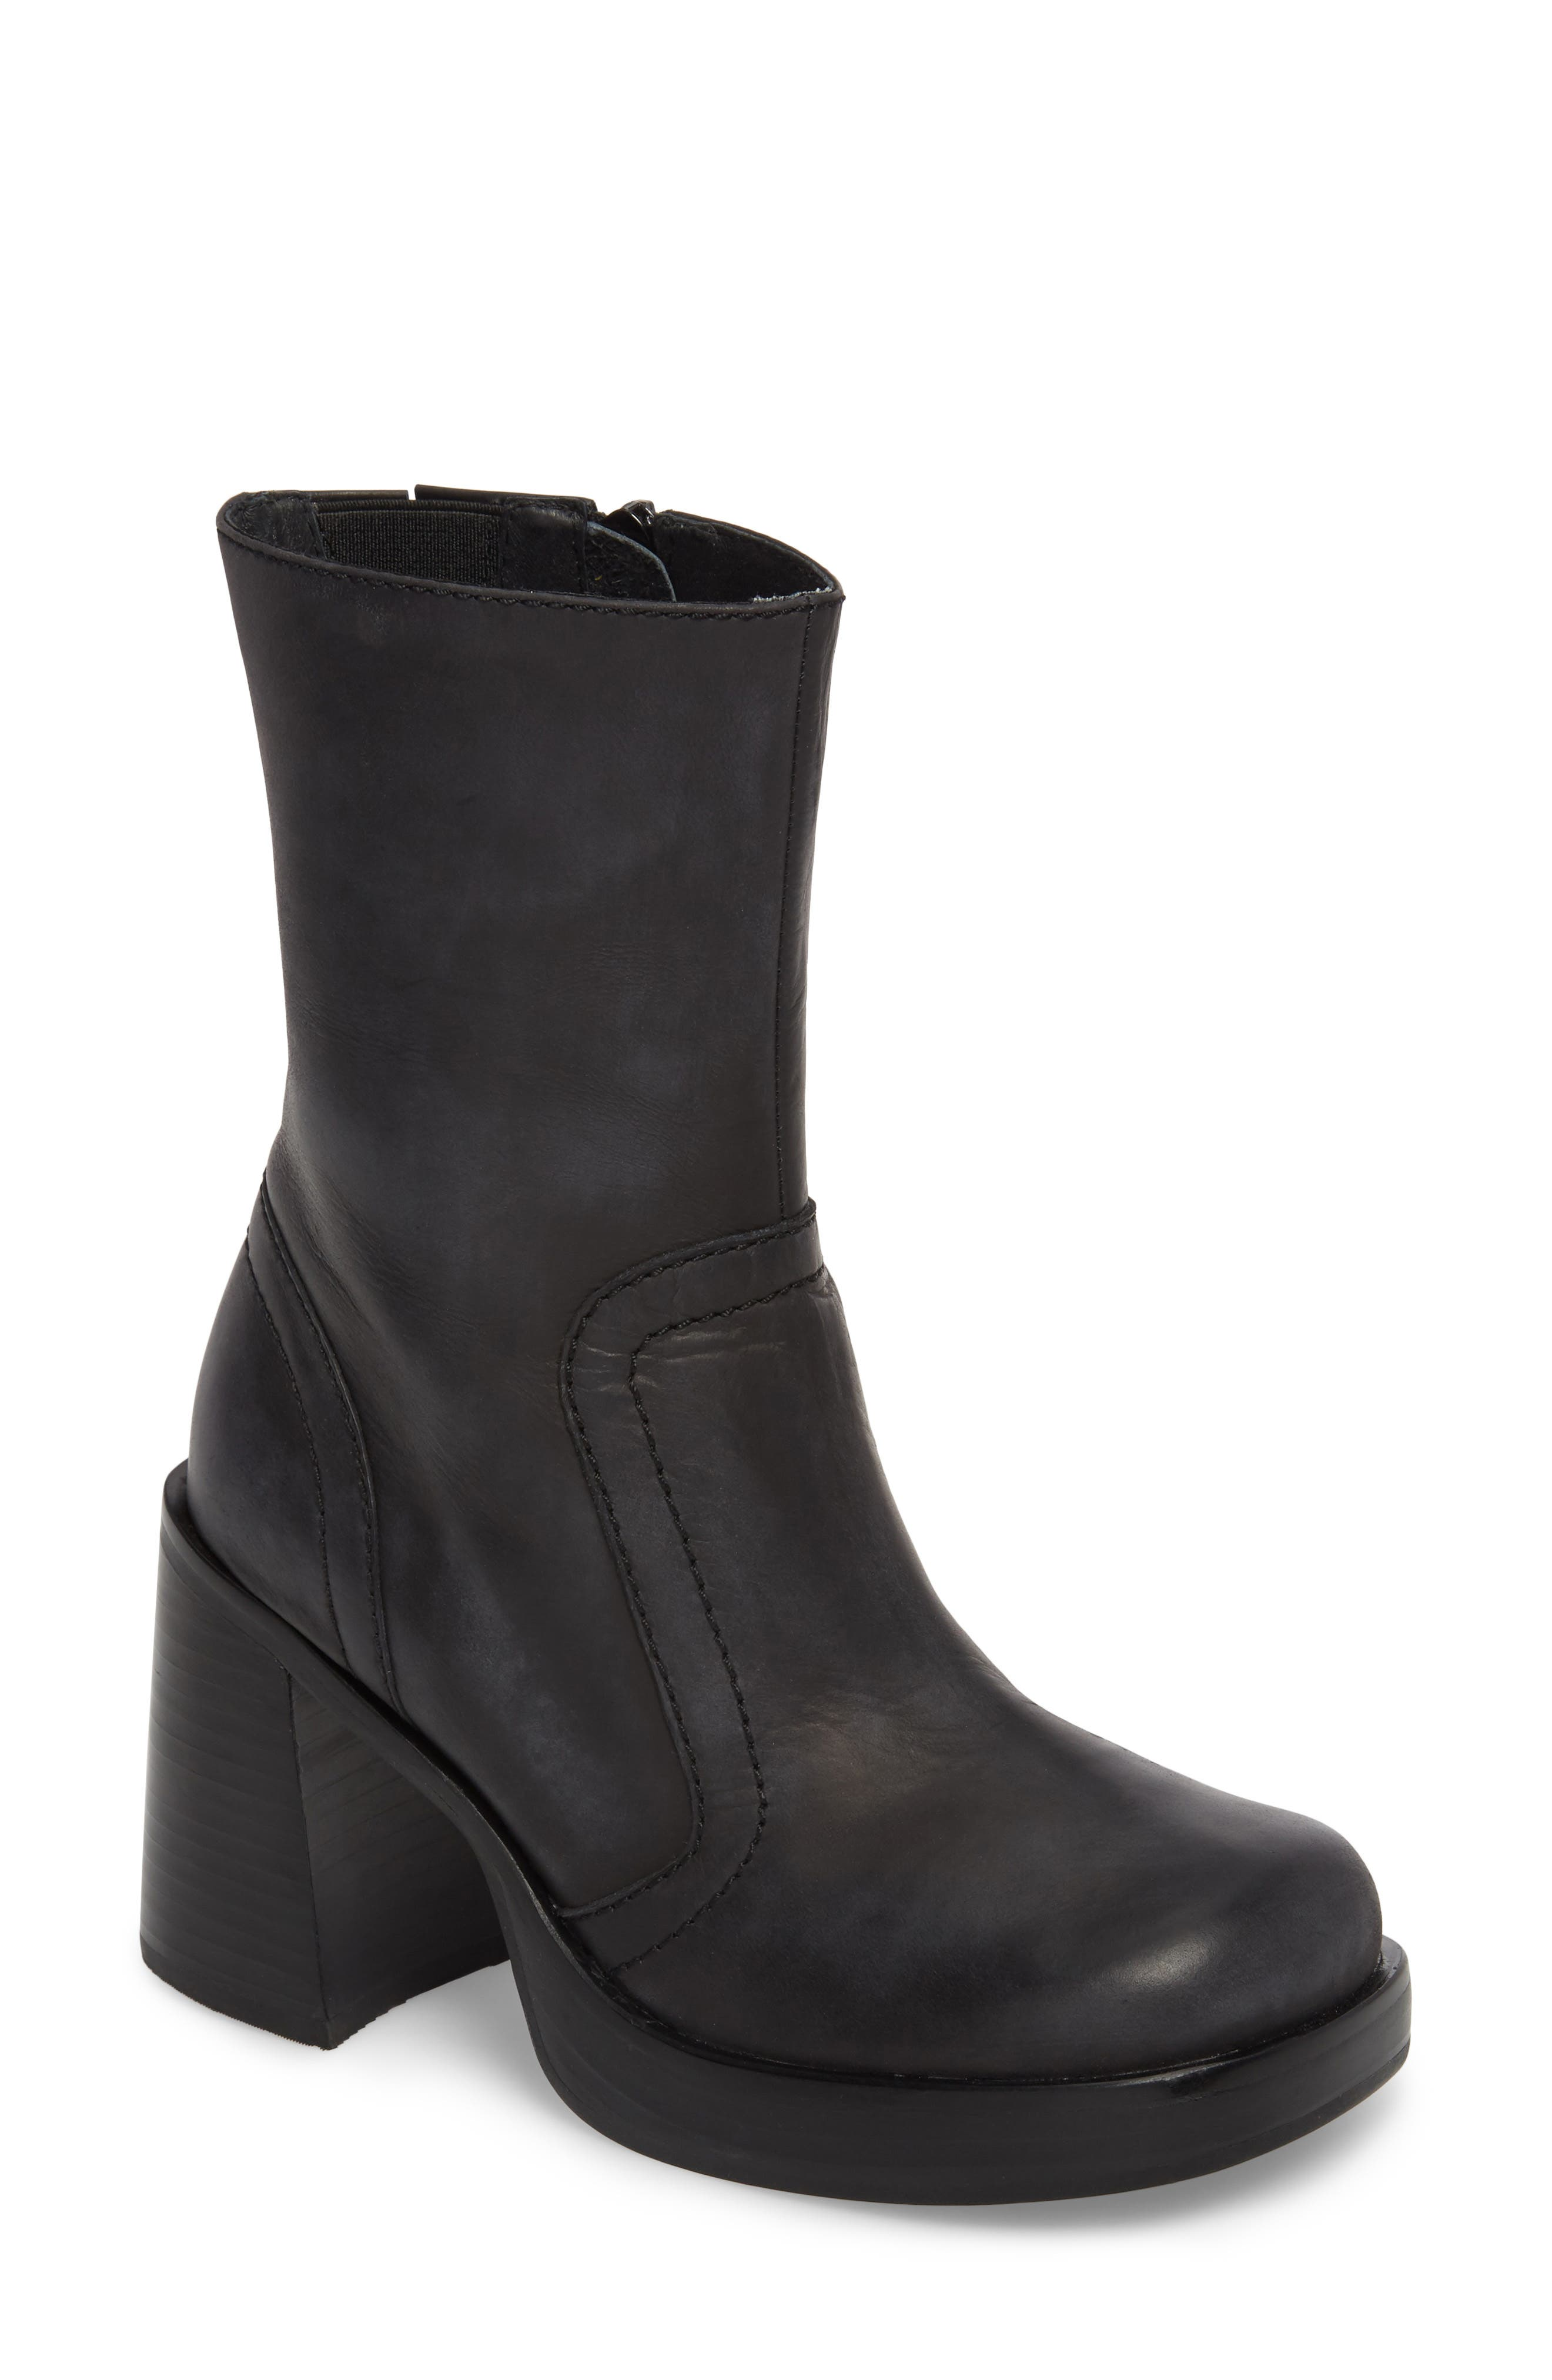 Alternate Image 1 Selected - Jeffrey Campbell Keeley Boot (Women)